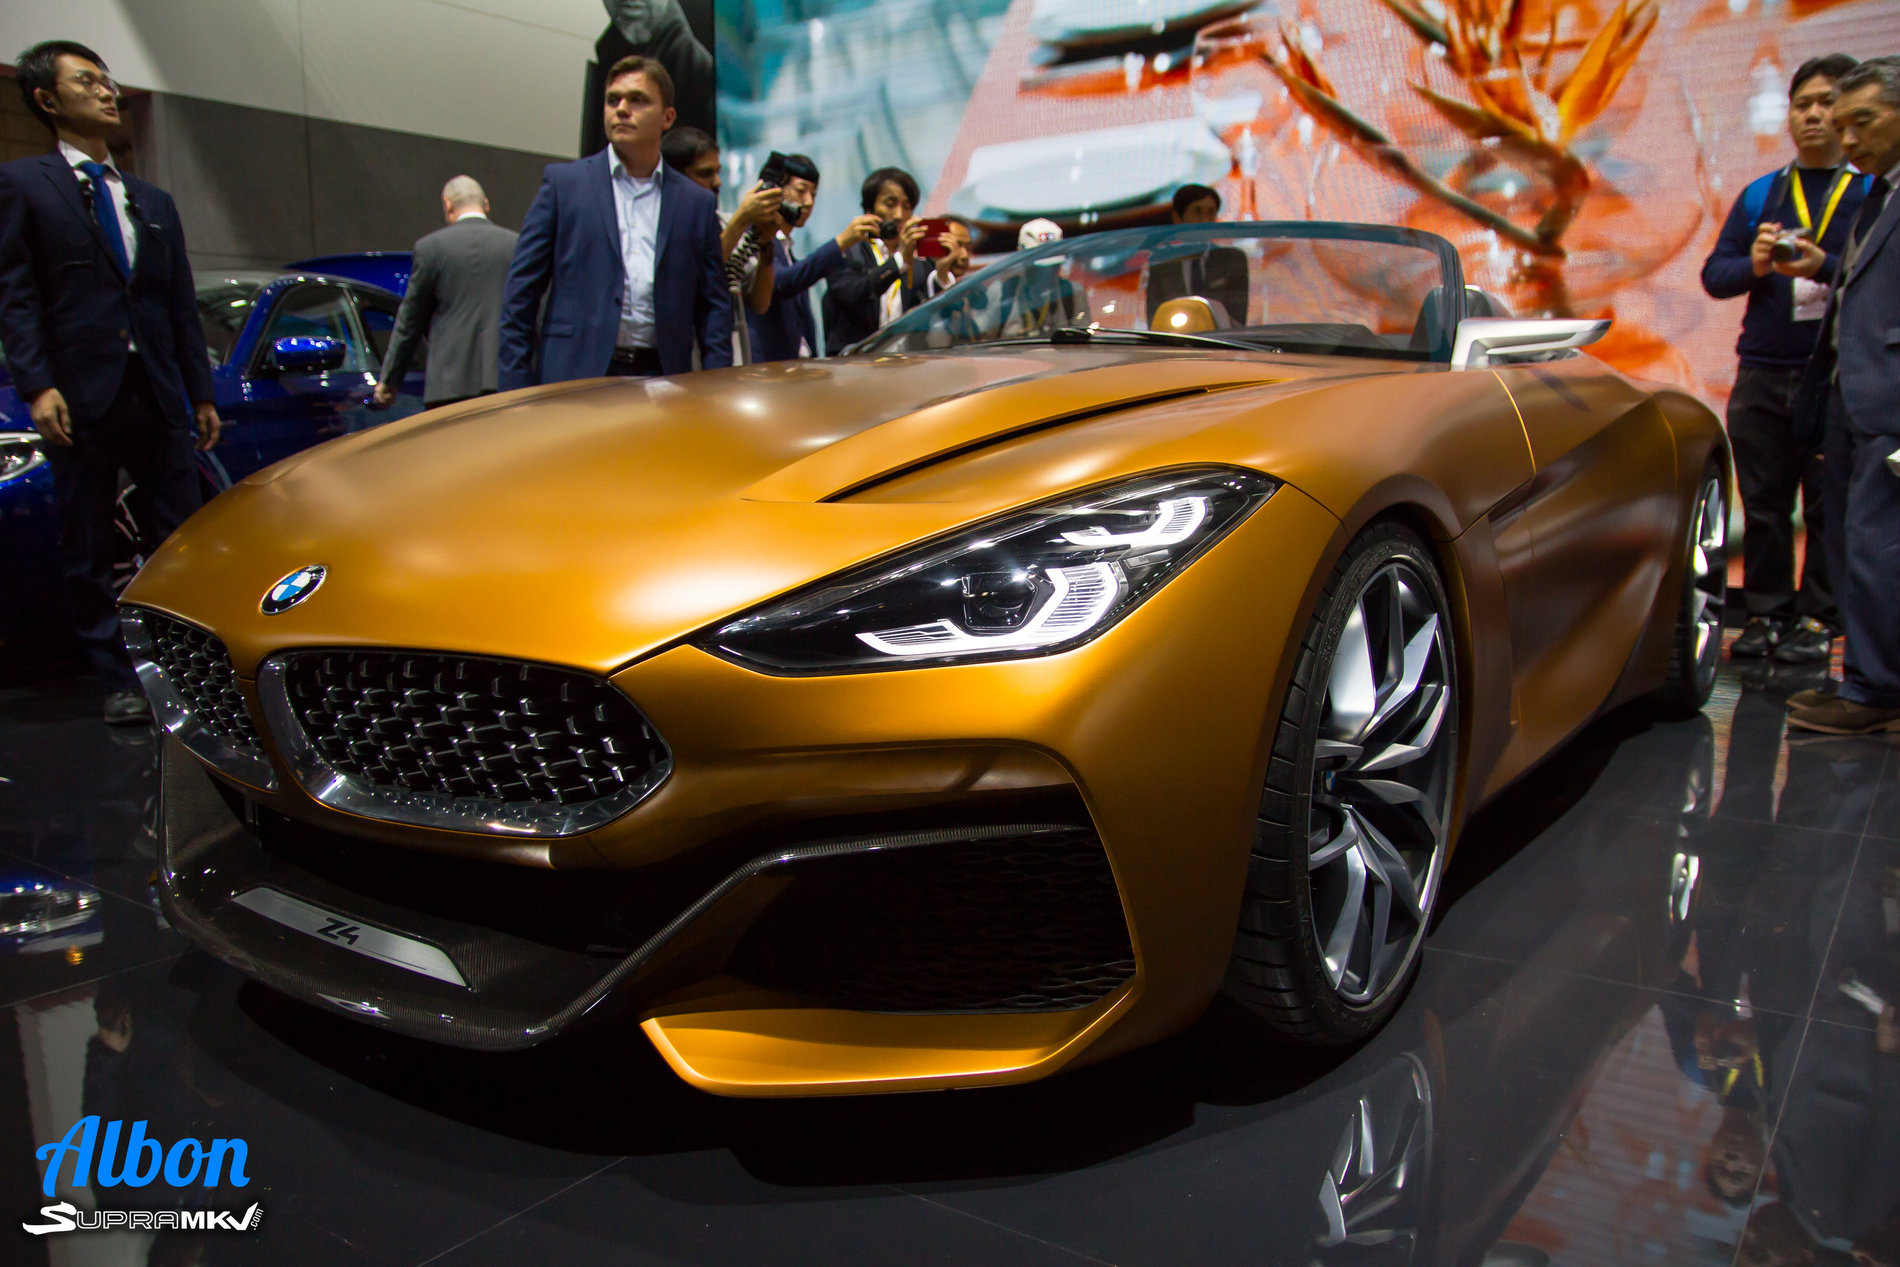 The Bmw Z4 Concept Page 12 Imo X6 Lucky So Thats Its No Supra But Definitely Still A Sight For Sore Eyes After Lame Toyota Briefing This Morning Ill Continue To Update